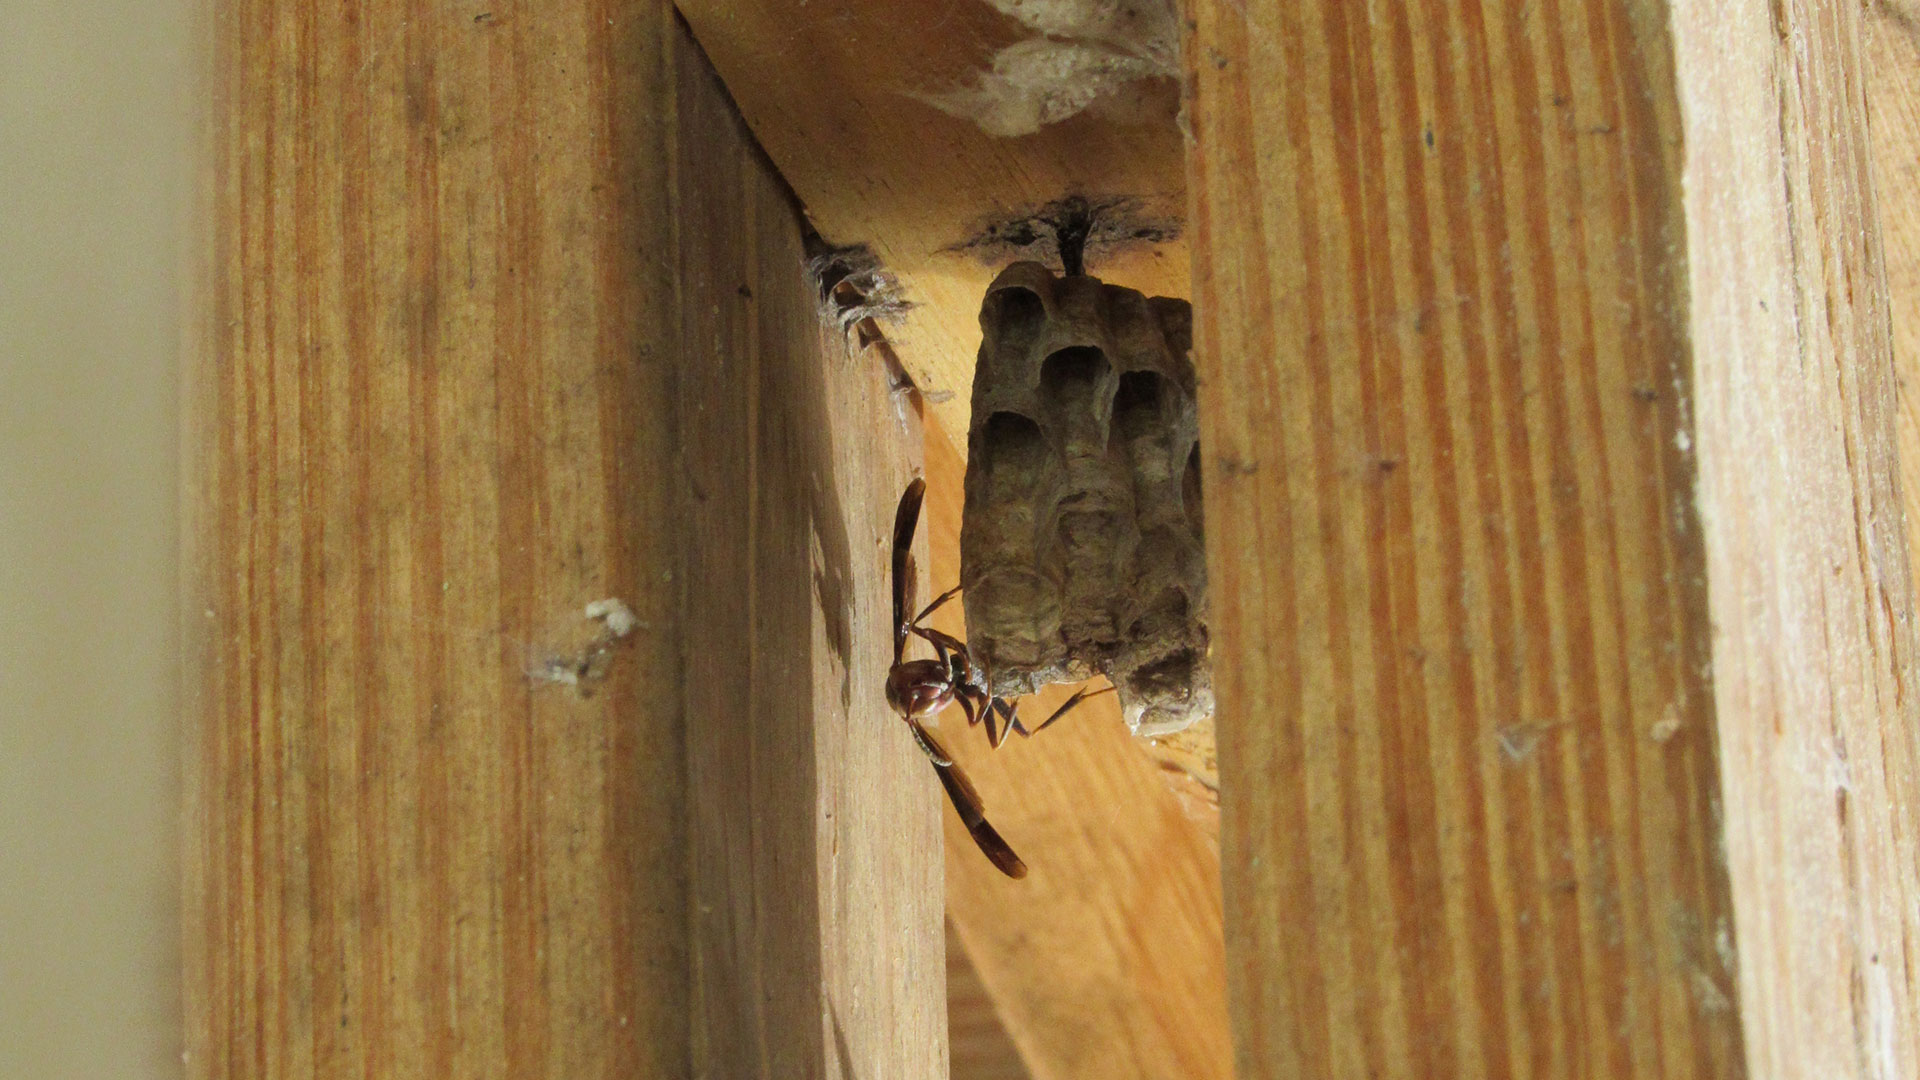 Wasp Removal